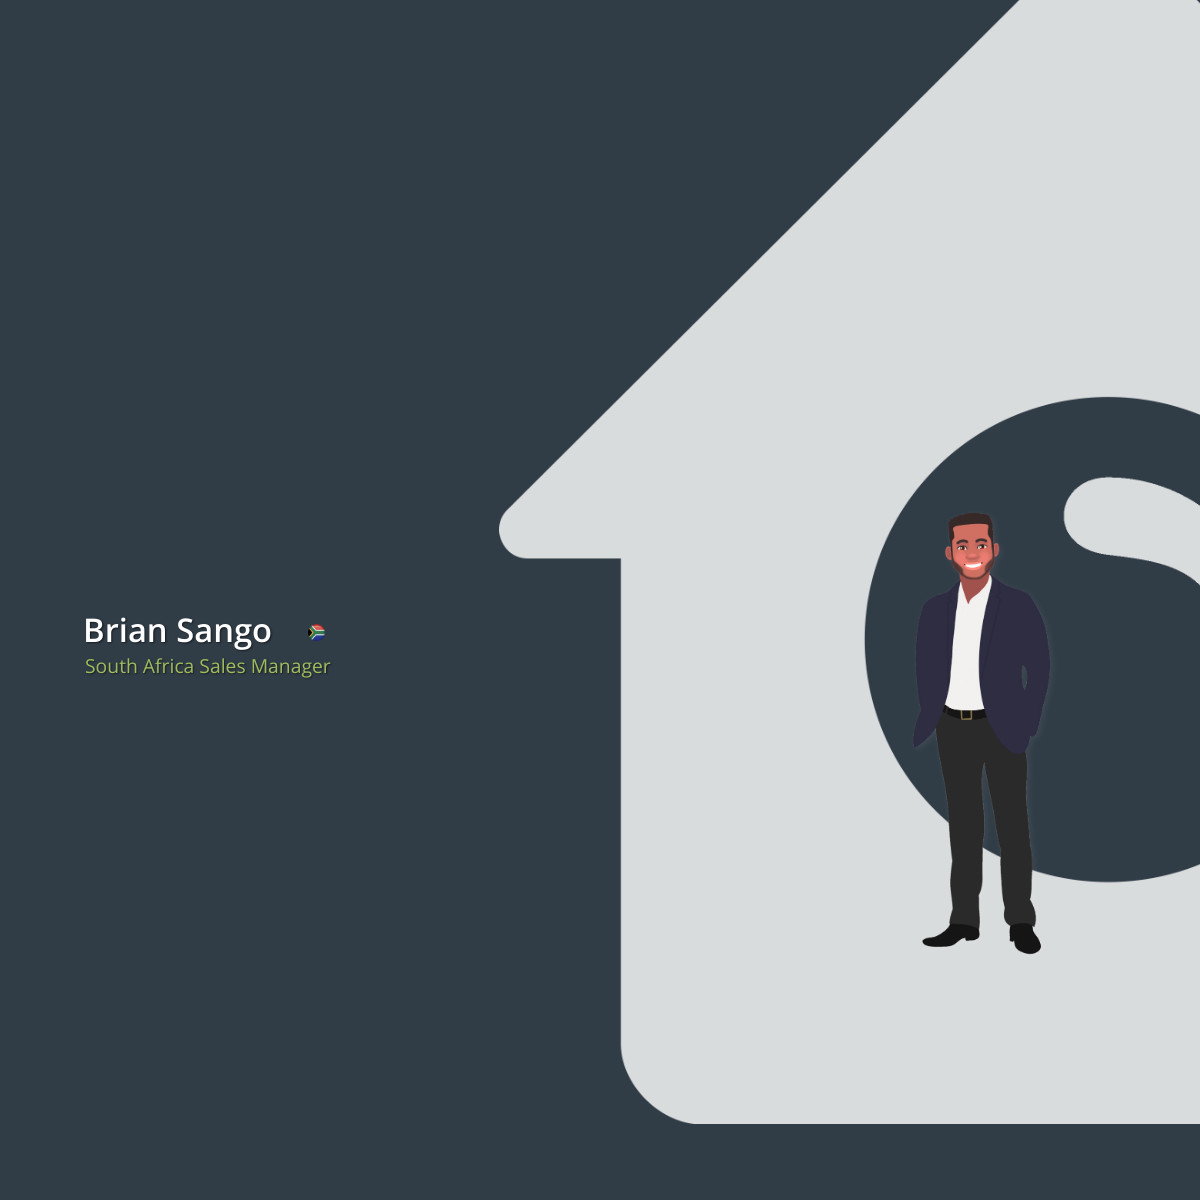 Brian Sango – Tells us why Property Inspect is different